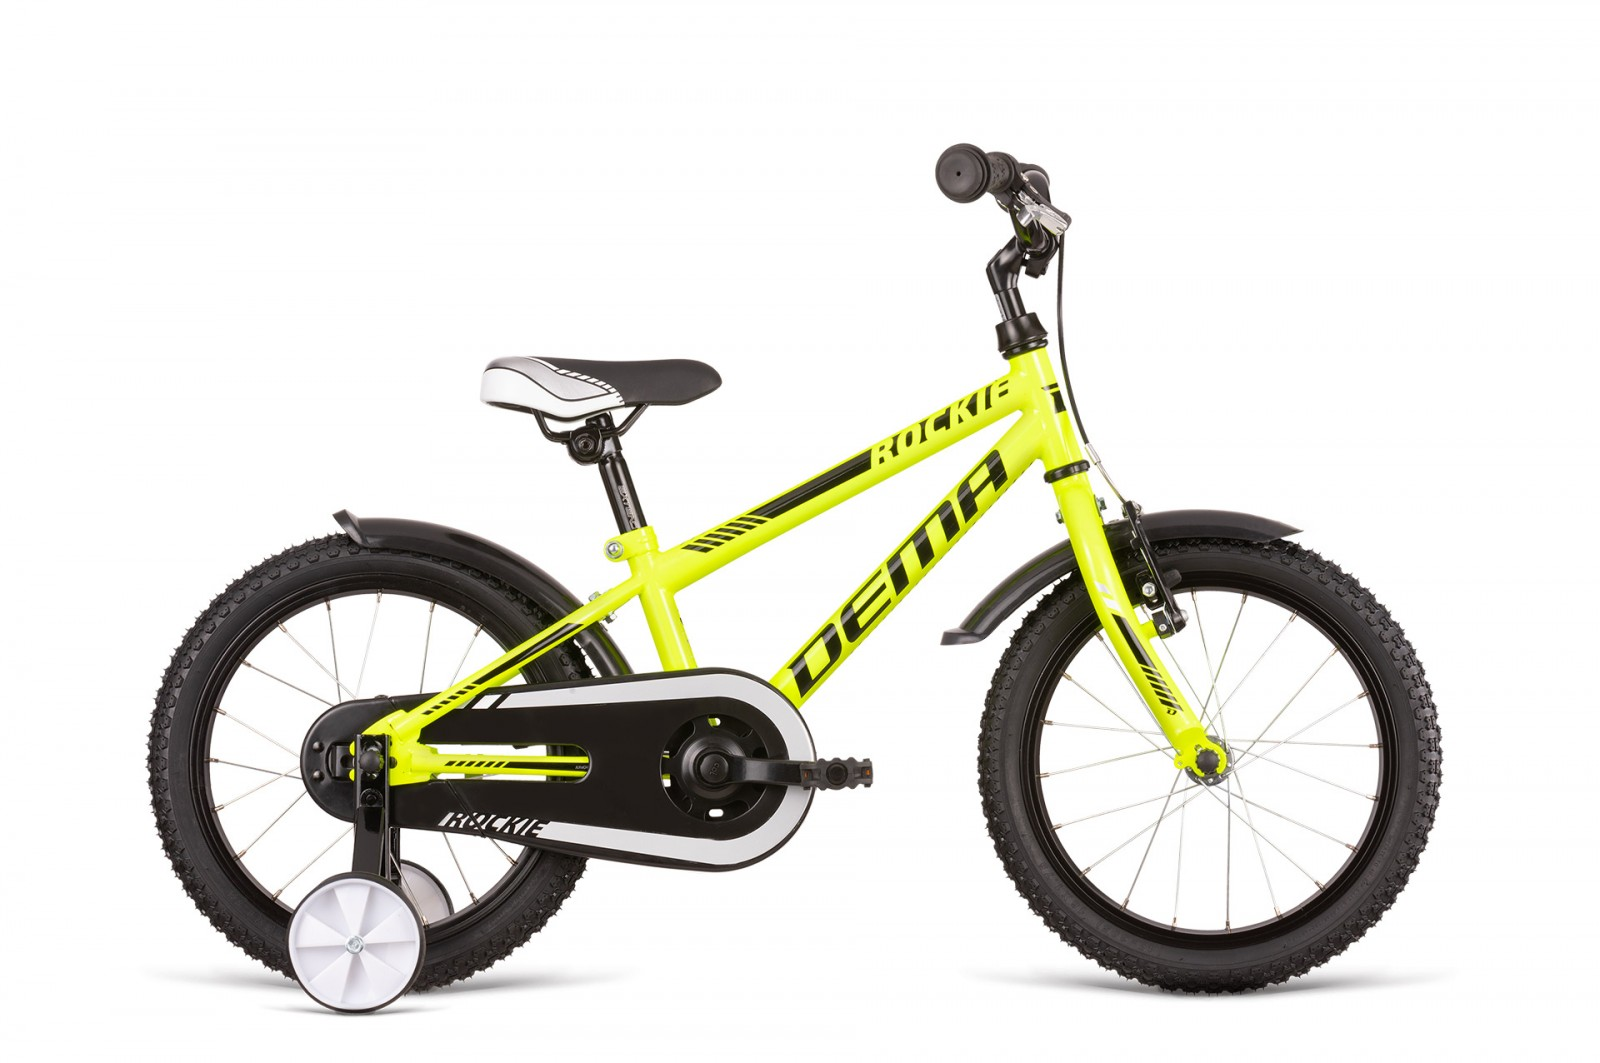 Dema ROCKIE 16 neon yellow-black